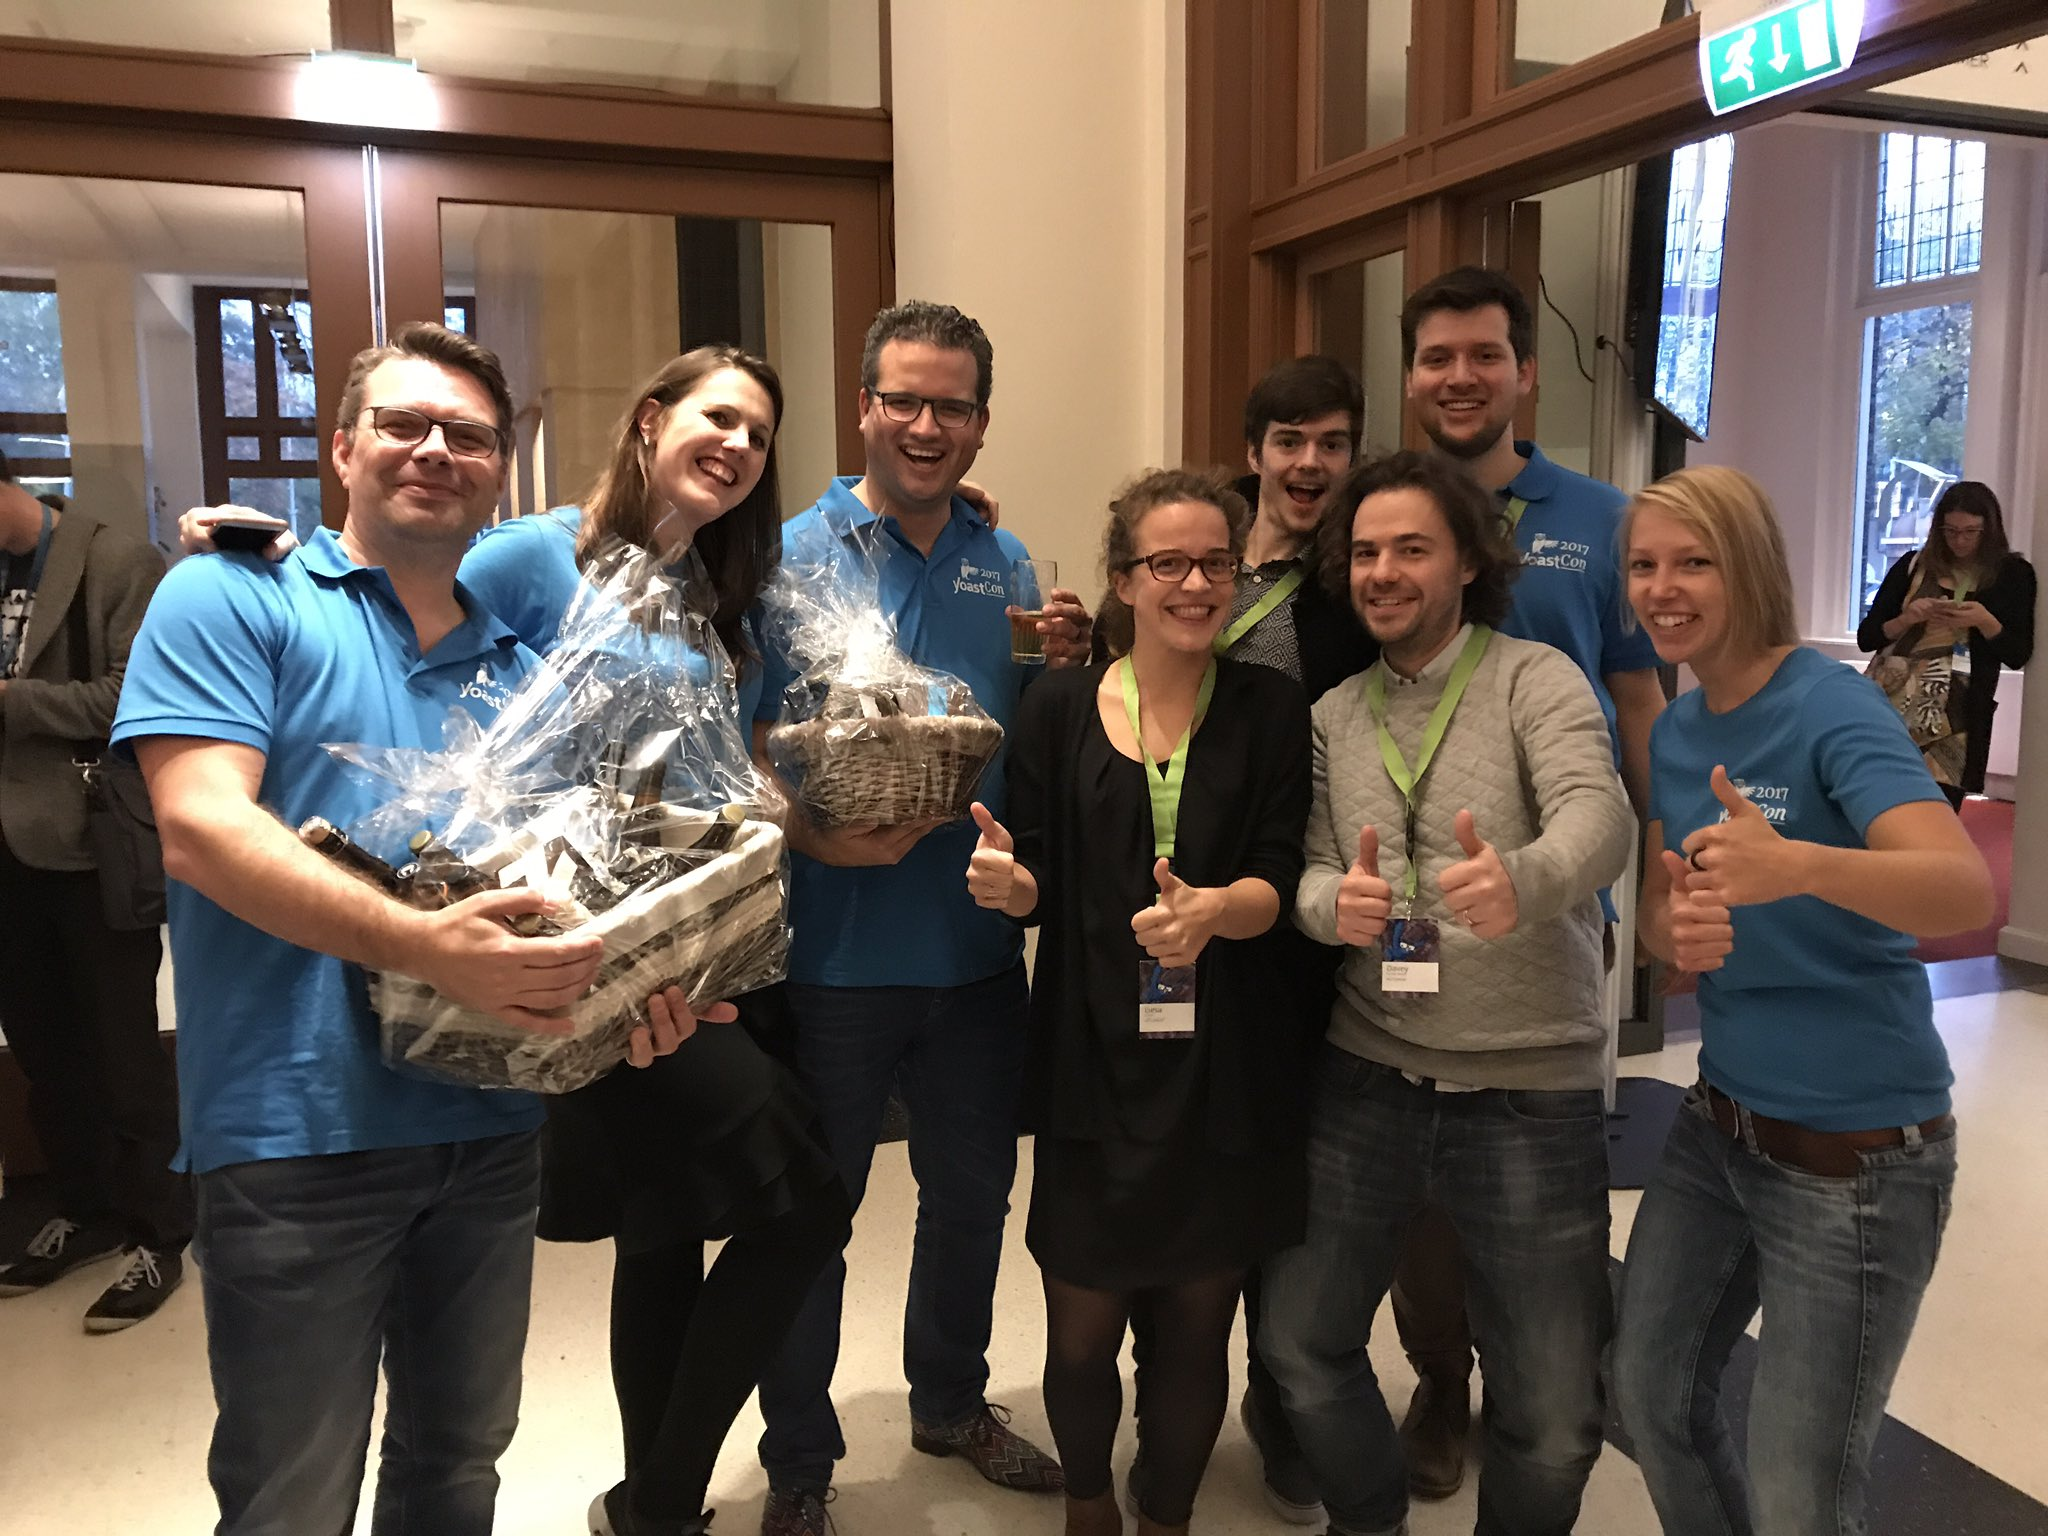 Yoast with their 'own conversion department' at YoastCon on November 2, 2017